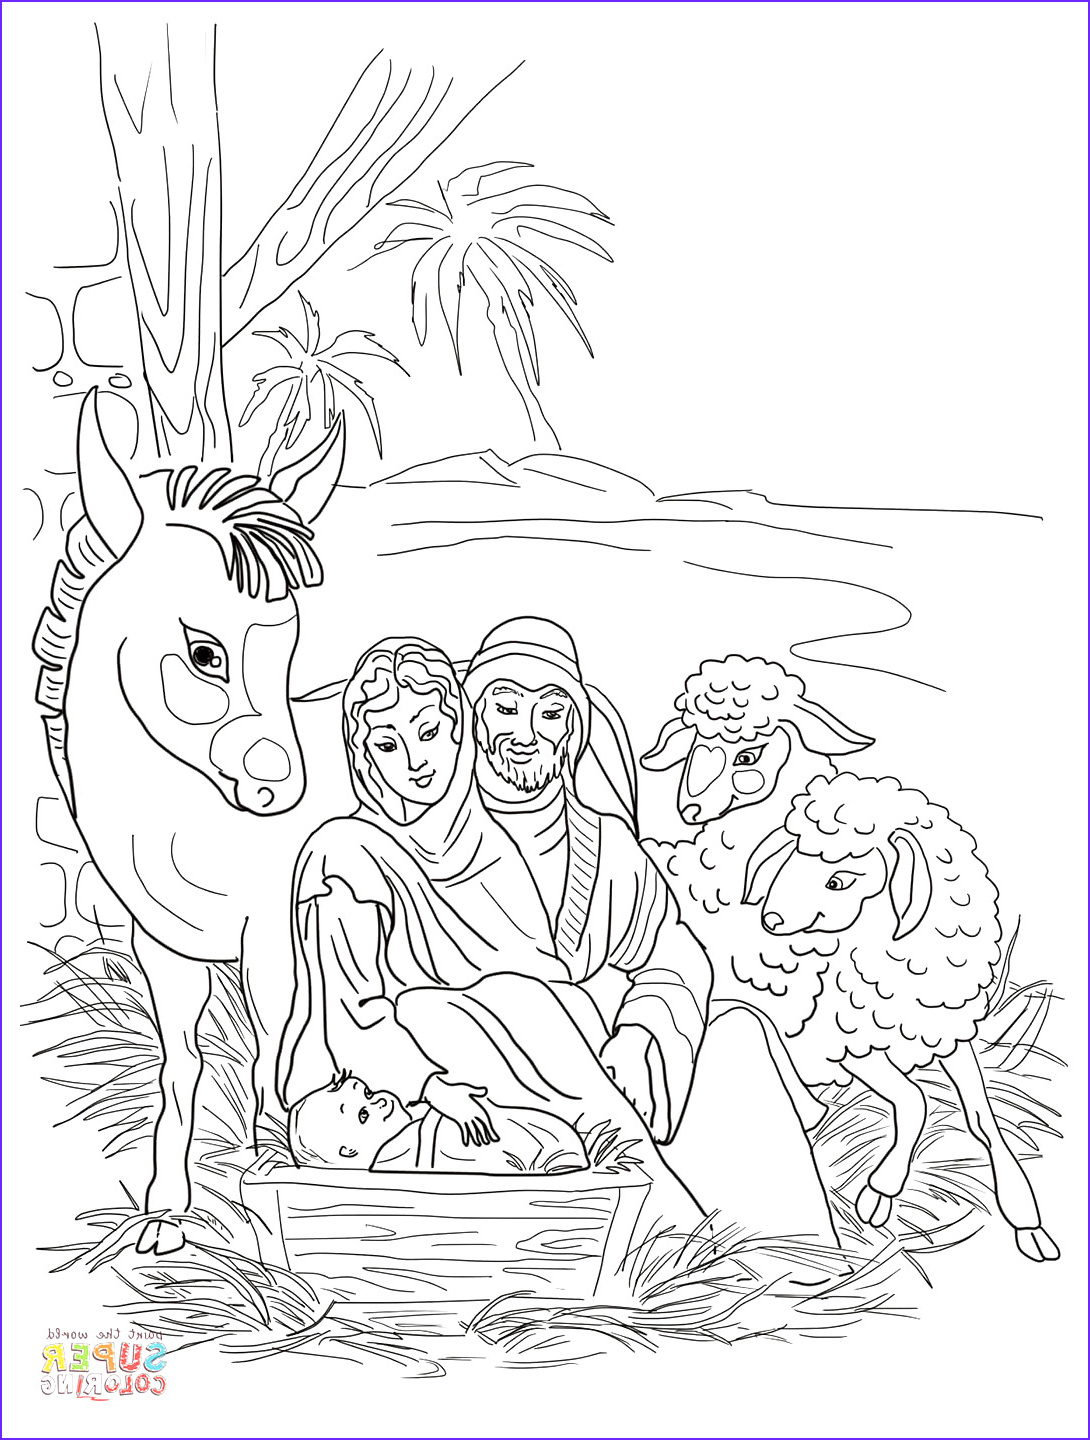 Coloring Page Of Jesus Inspirational Stock Free Christian Coloring Pages for Children and Adults